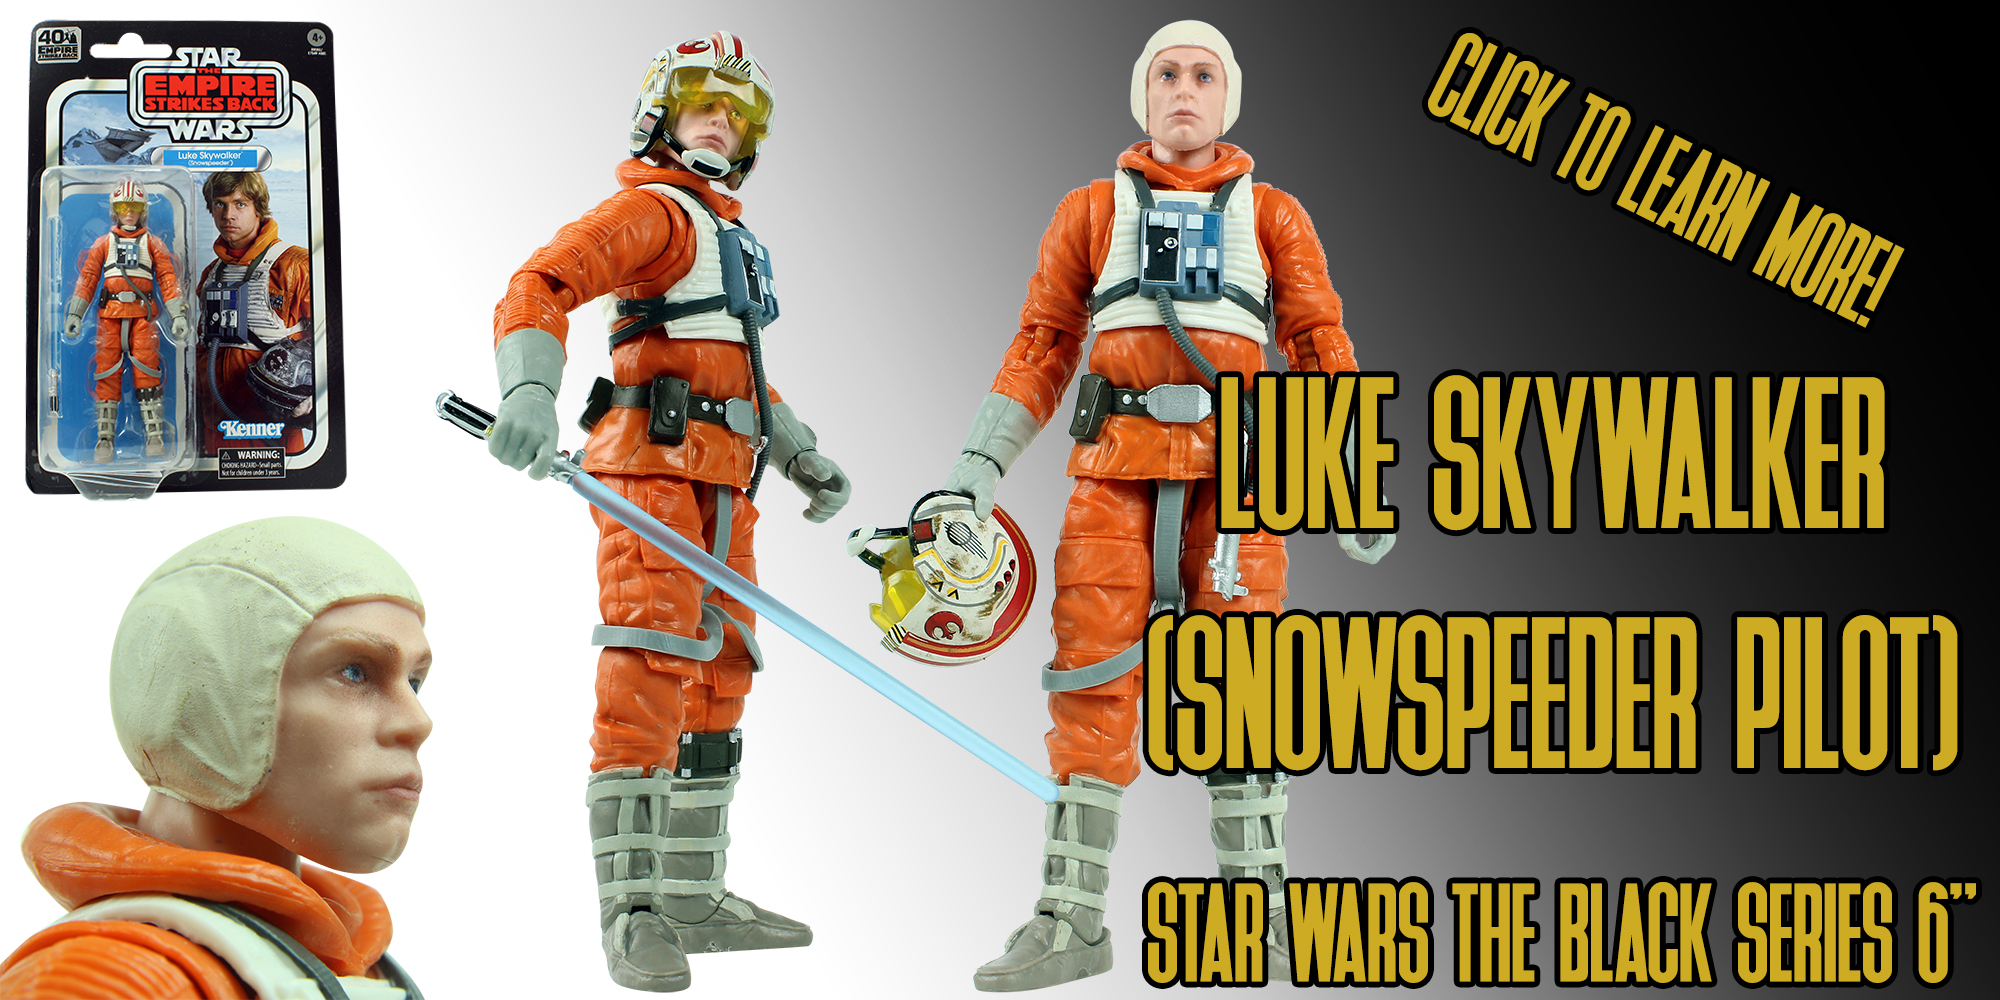 Black Series Luke Skywalker Snowspeeder Pilot